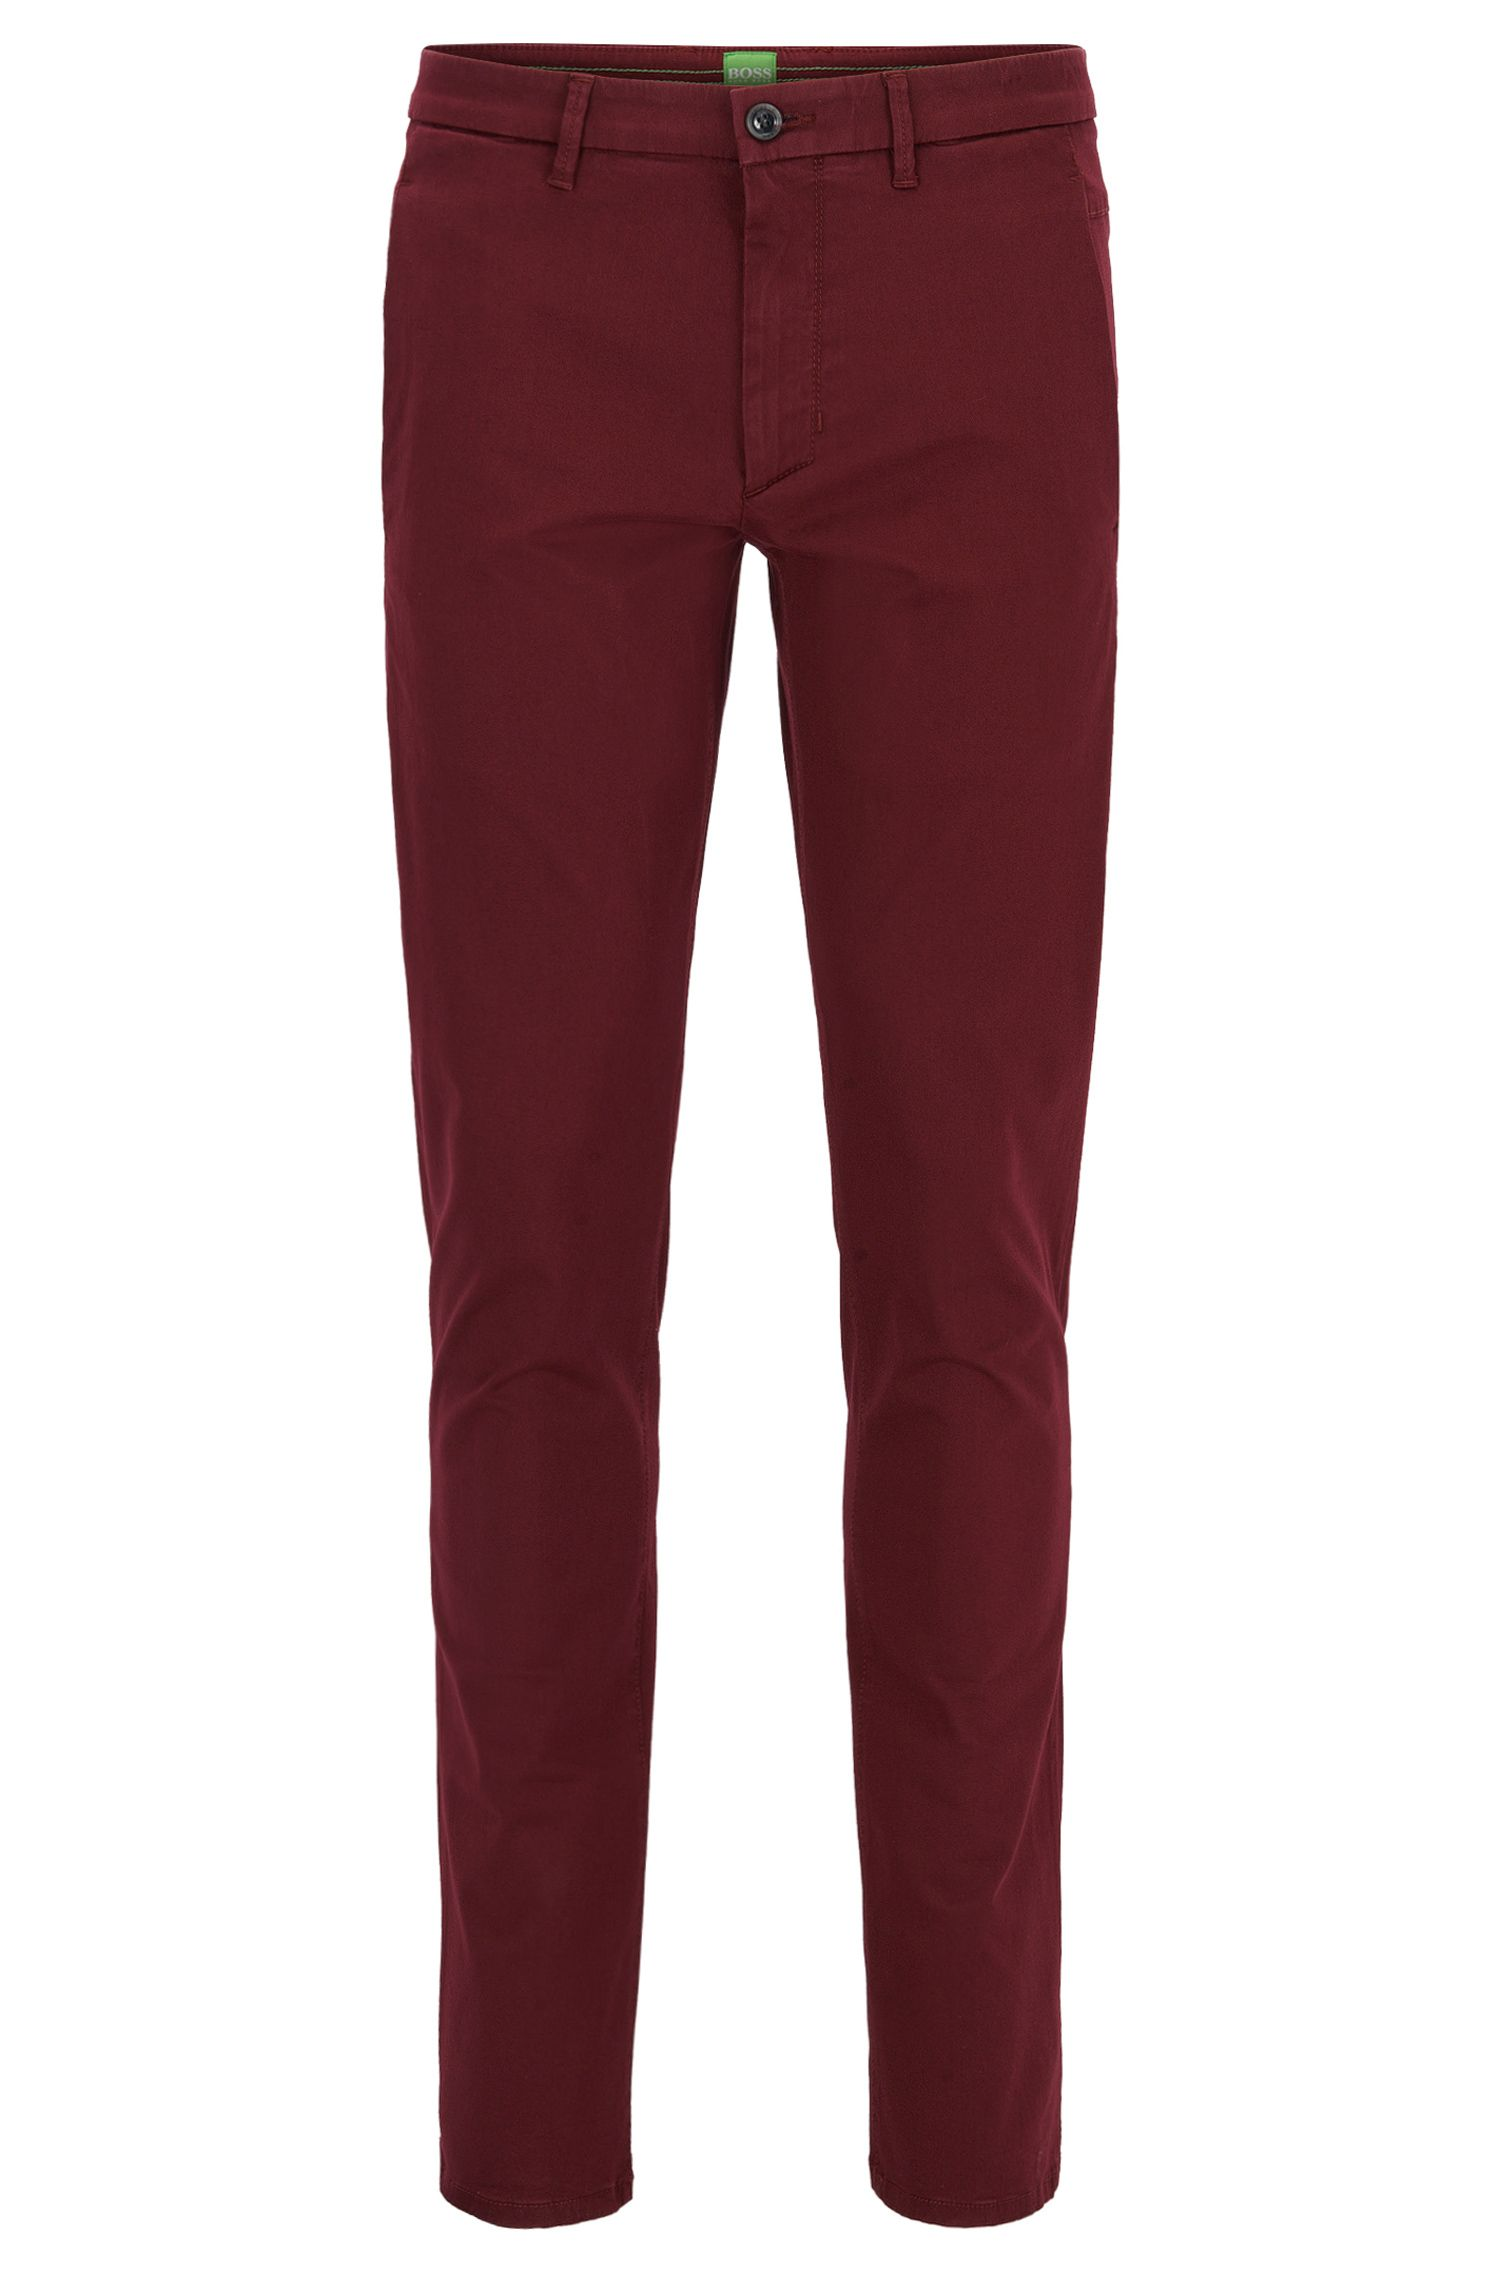 Slim Fit, Stretch Cotton Blend Pants | Leeman W